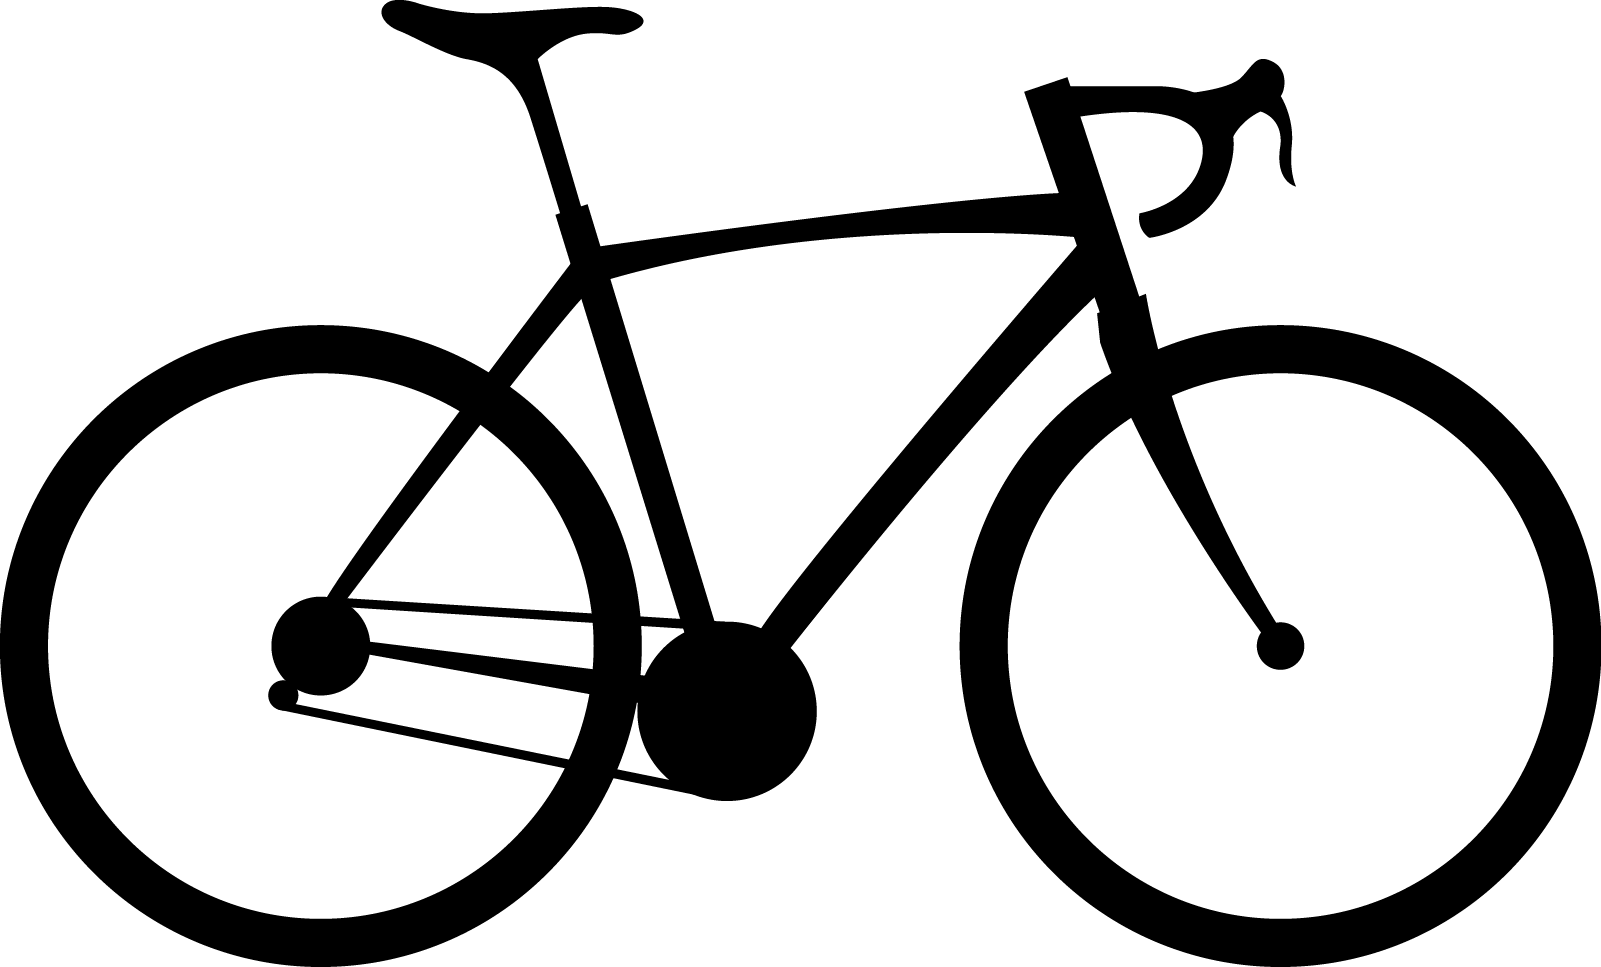 Road bike png. Silhouette at getdrawings com